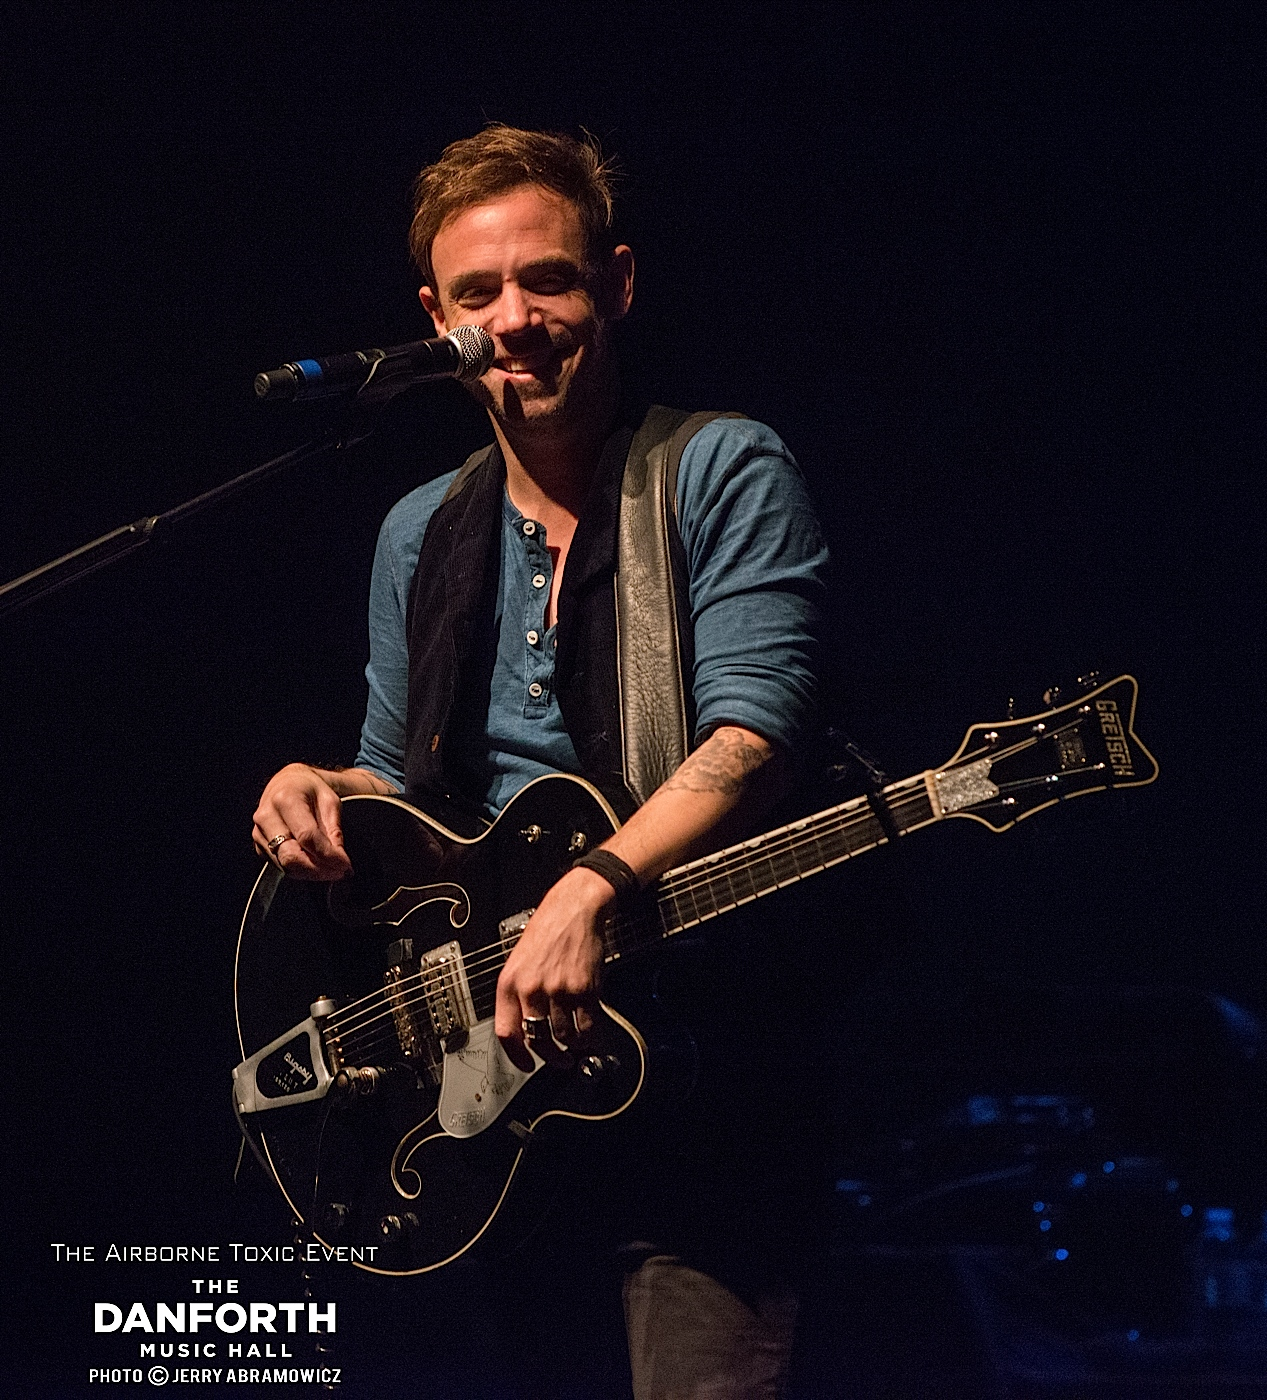 20130514 The Airborne Toxic Event performs at The Danforth Music Hall Toronto 0143